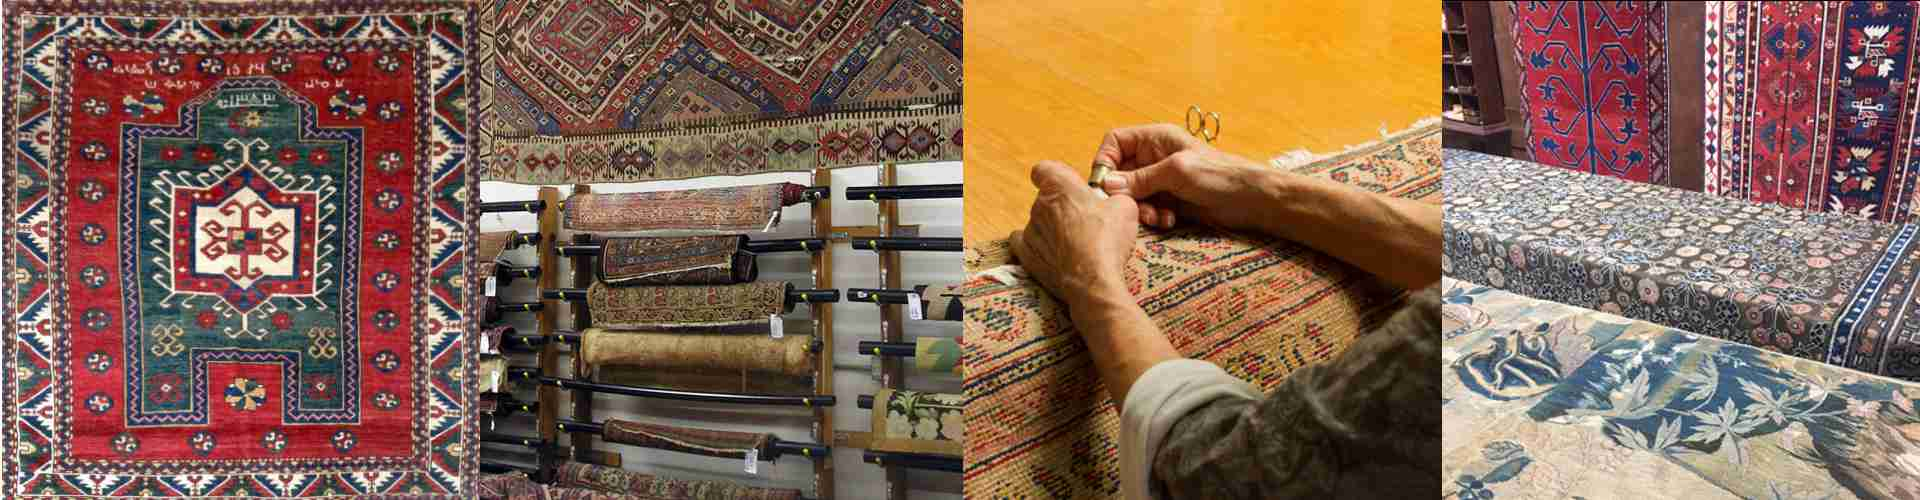 Rug Owners and Shoppers